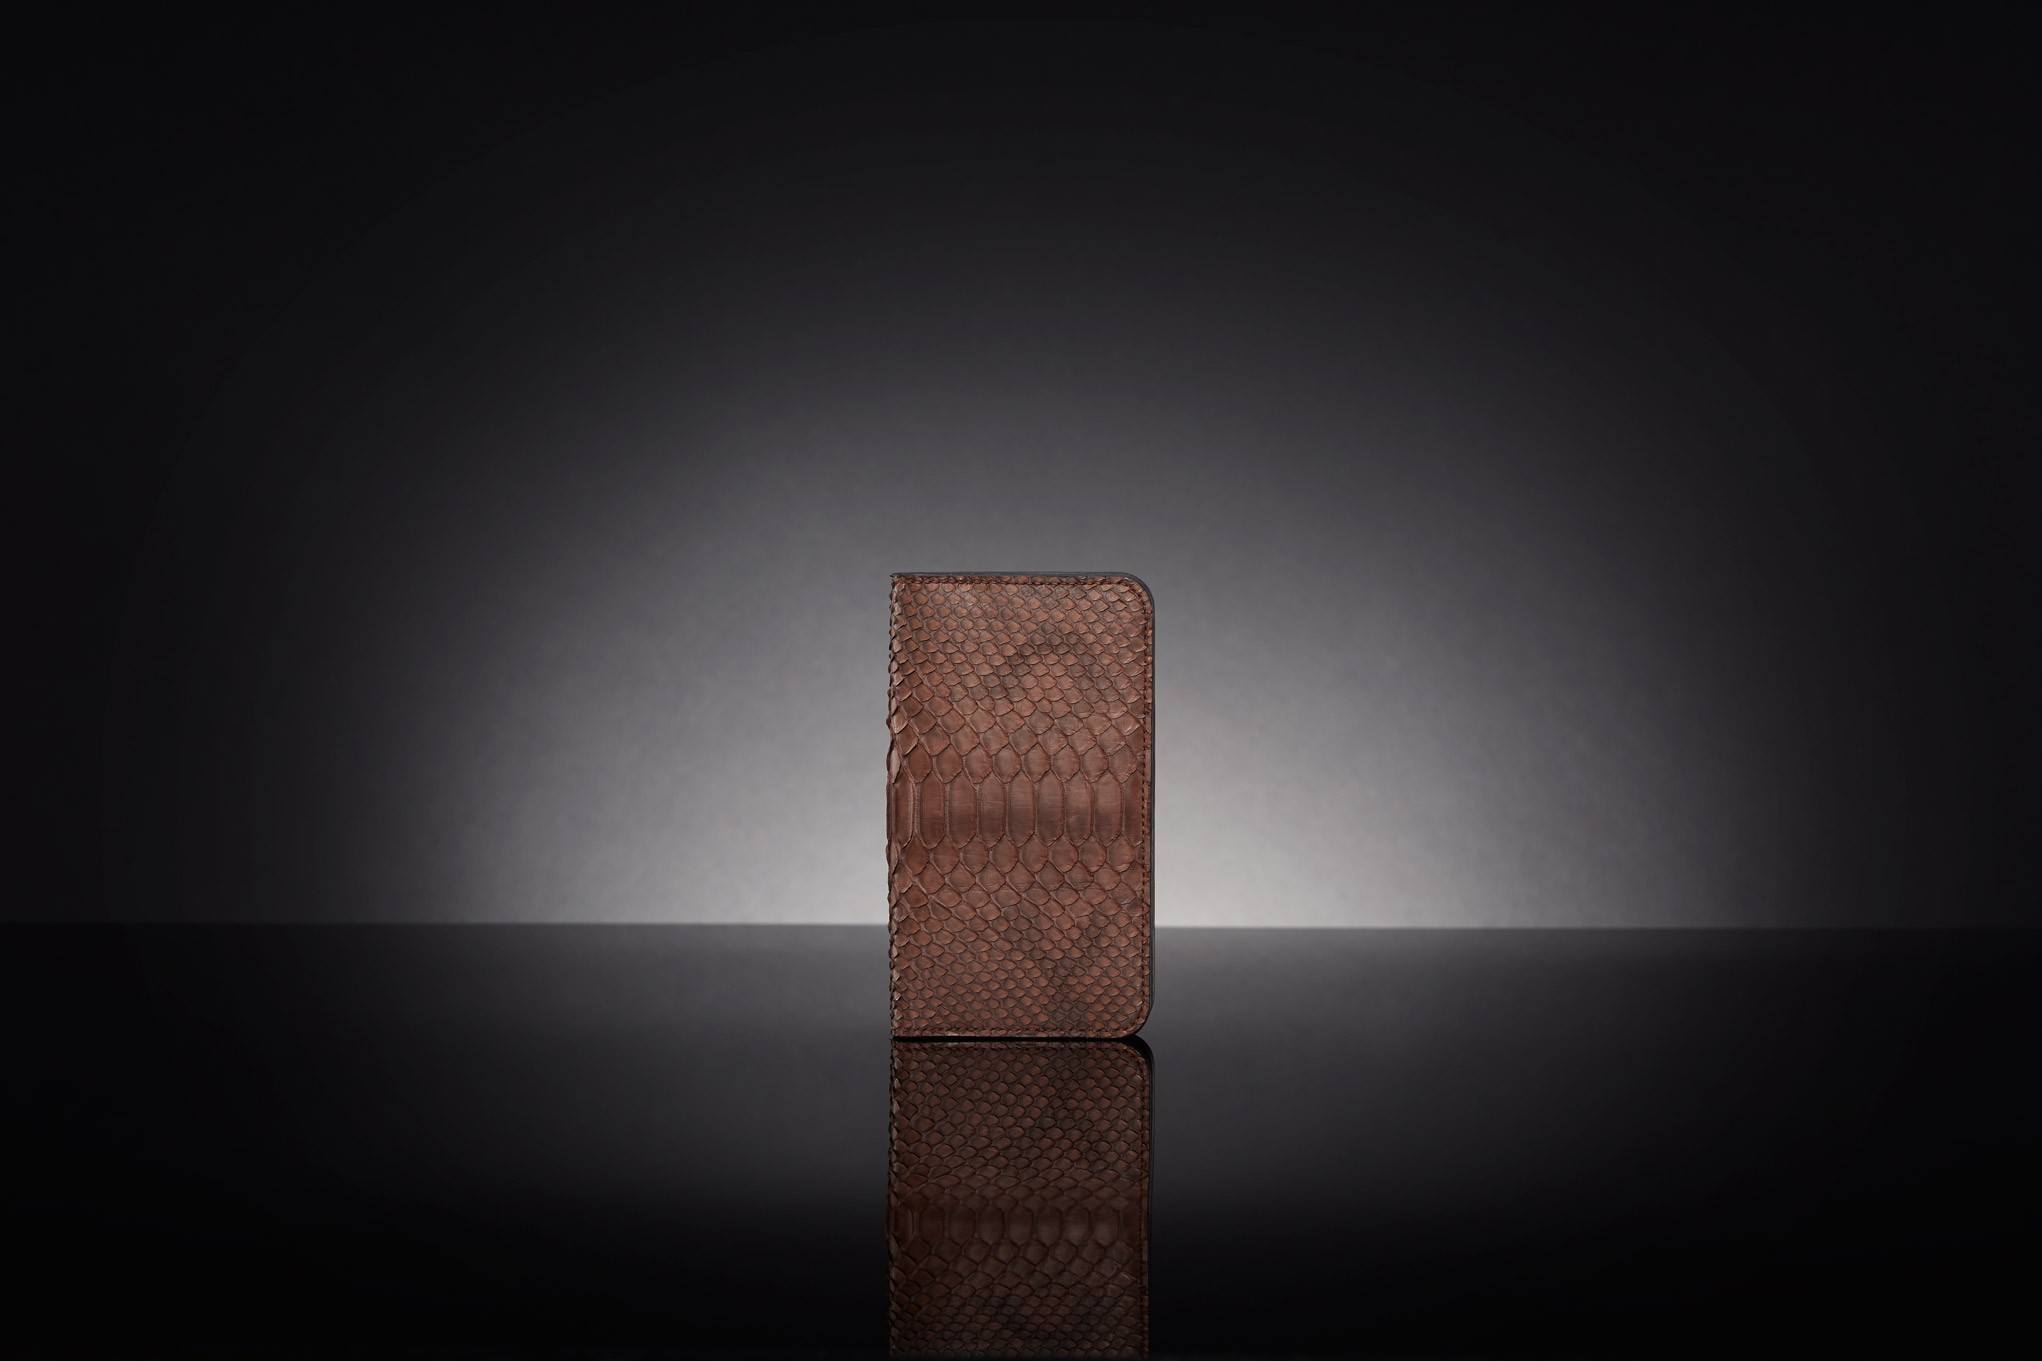 IPHONE 6 PLUS WALLET